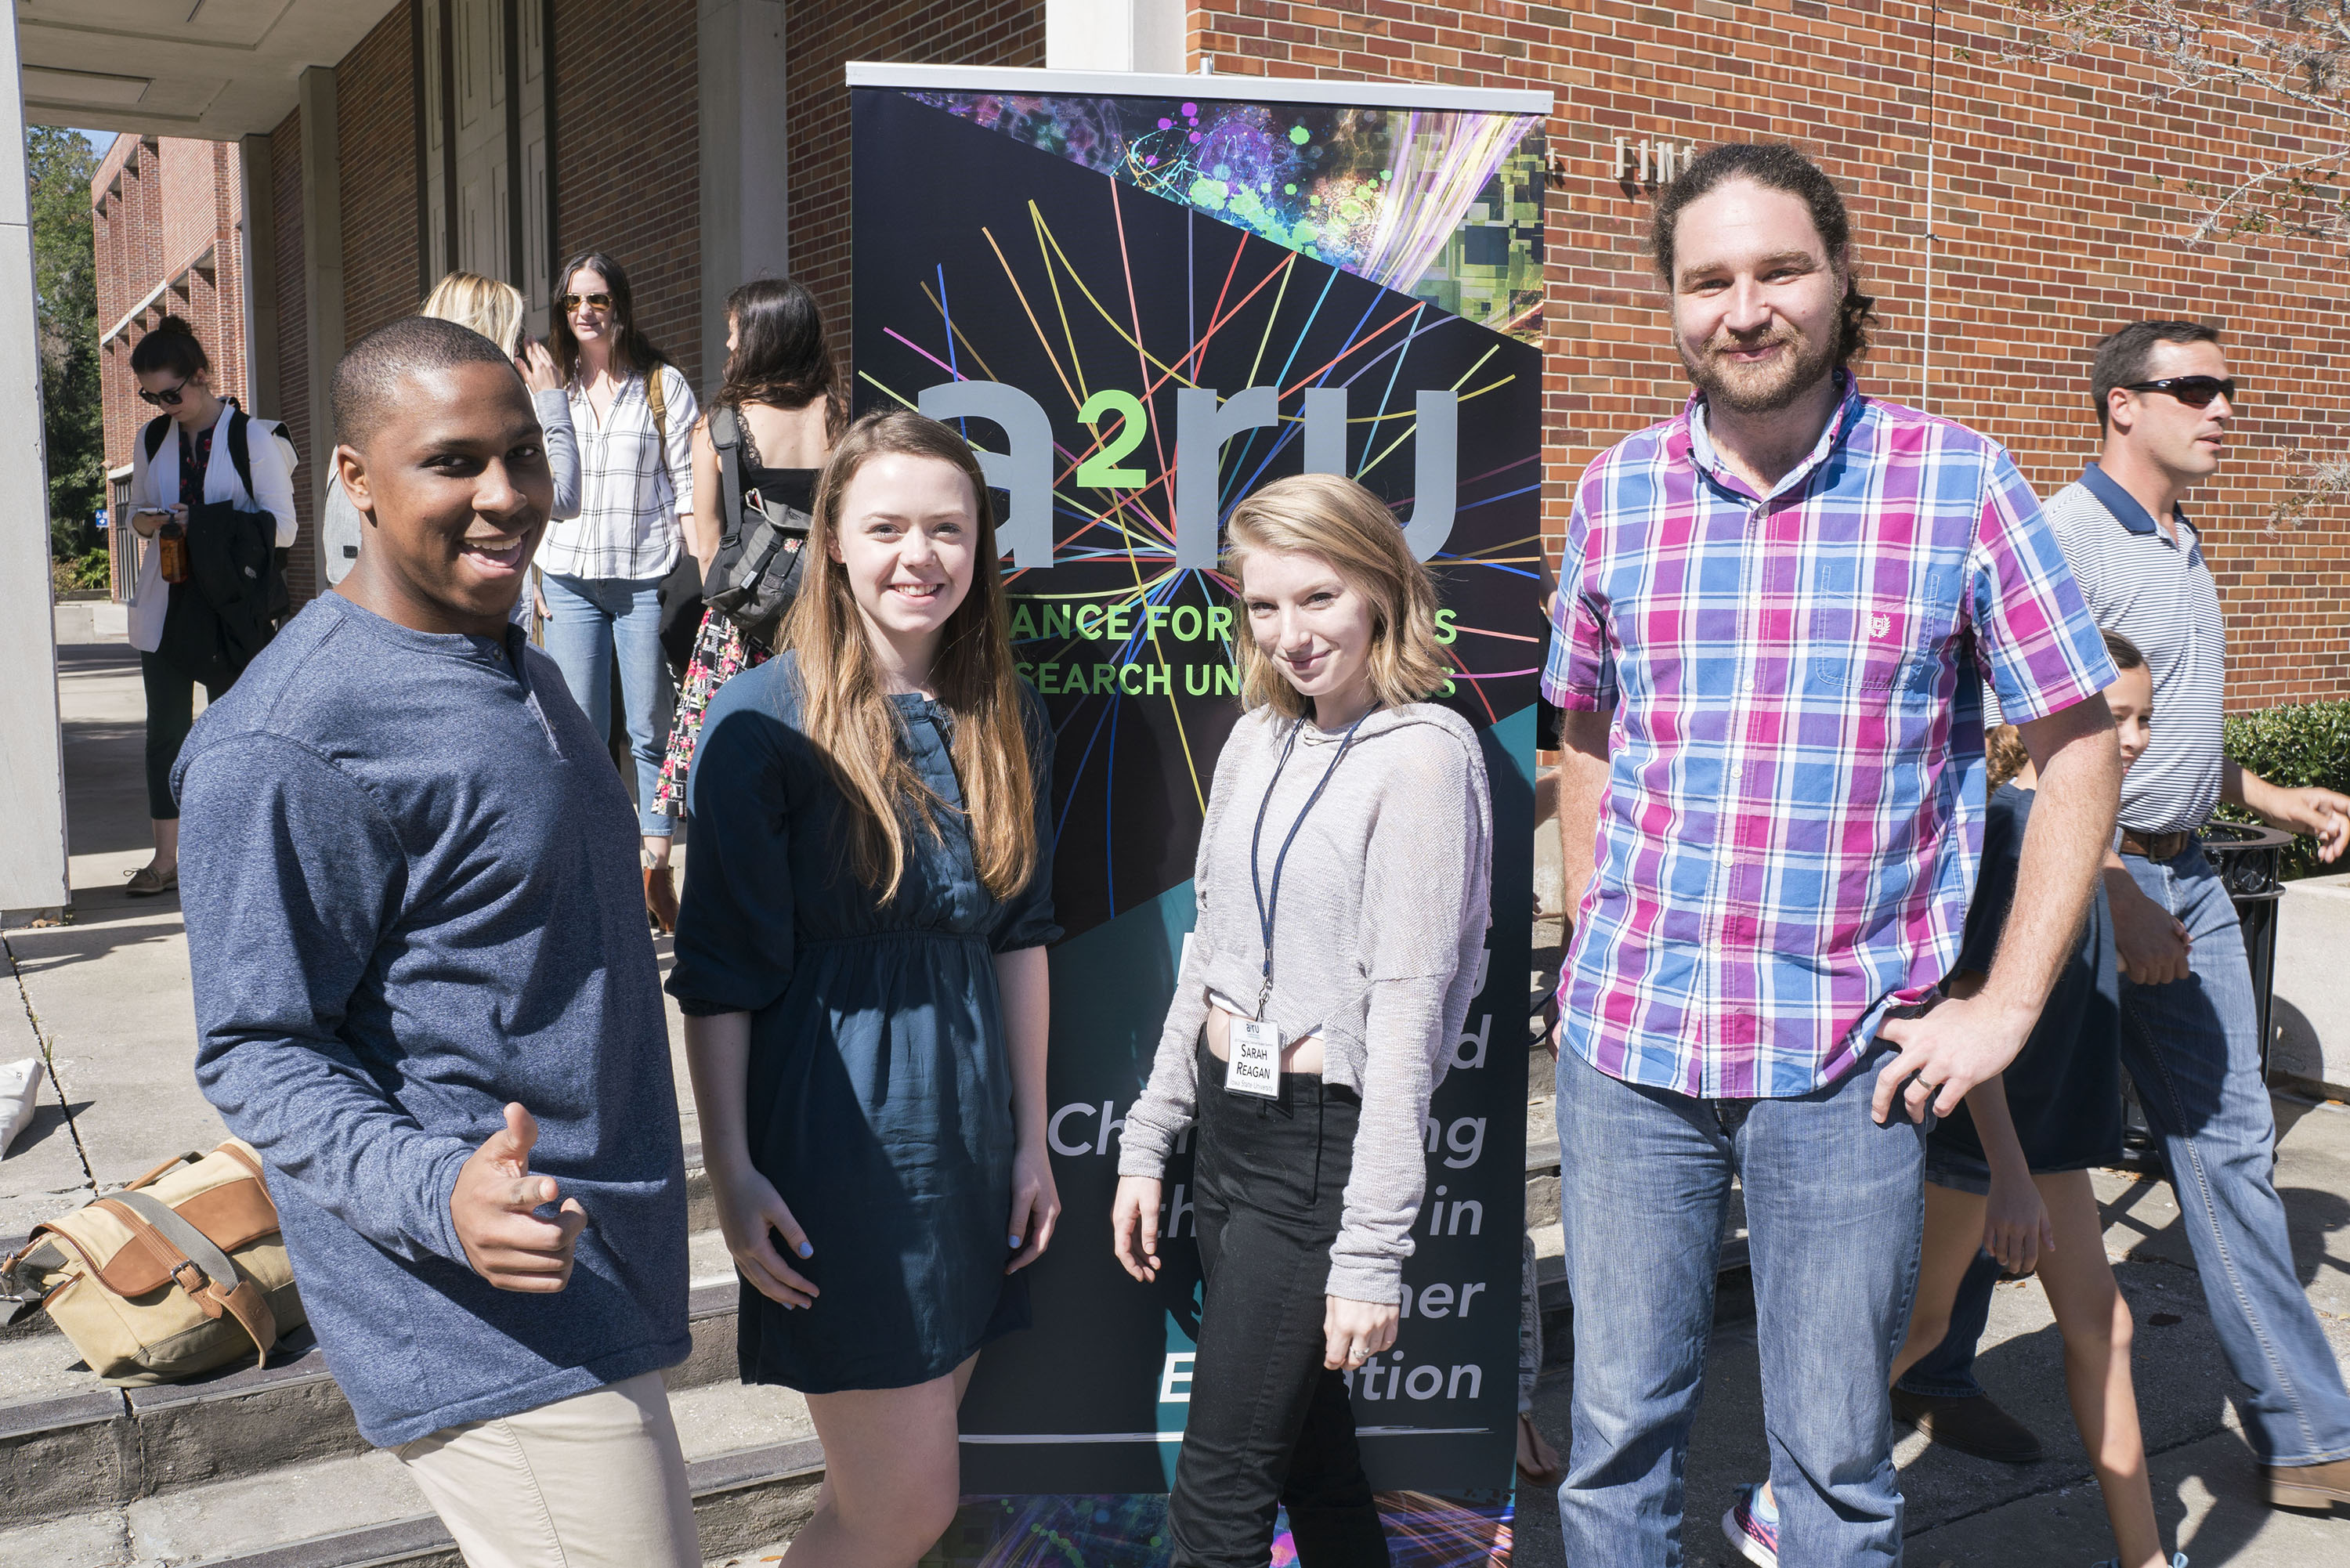 College of Design students Matt Wilson, Lauren Roberts and Sarah Reagan with art and visual culture Assistant Professor Austin Stewart at the a2ru Emerging Creatives Student Summit in Gainesville, Florida